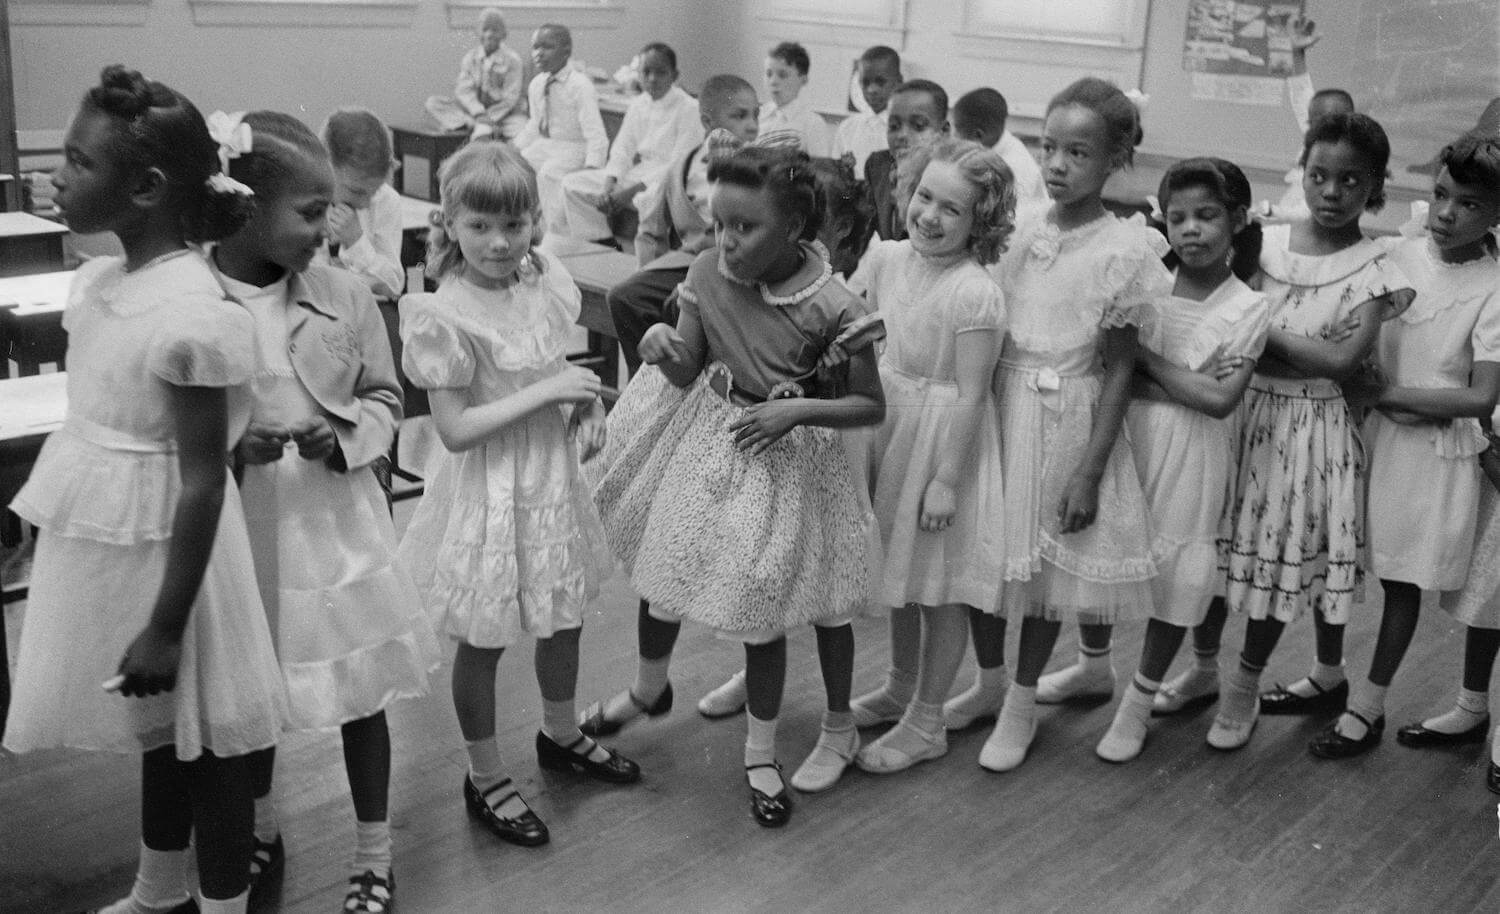 white and Black students attending school together; desegregation during the civil rights era